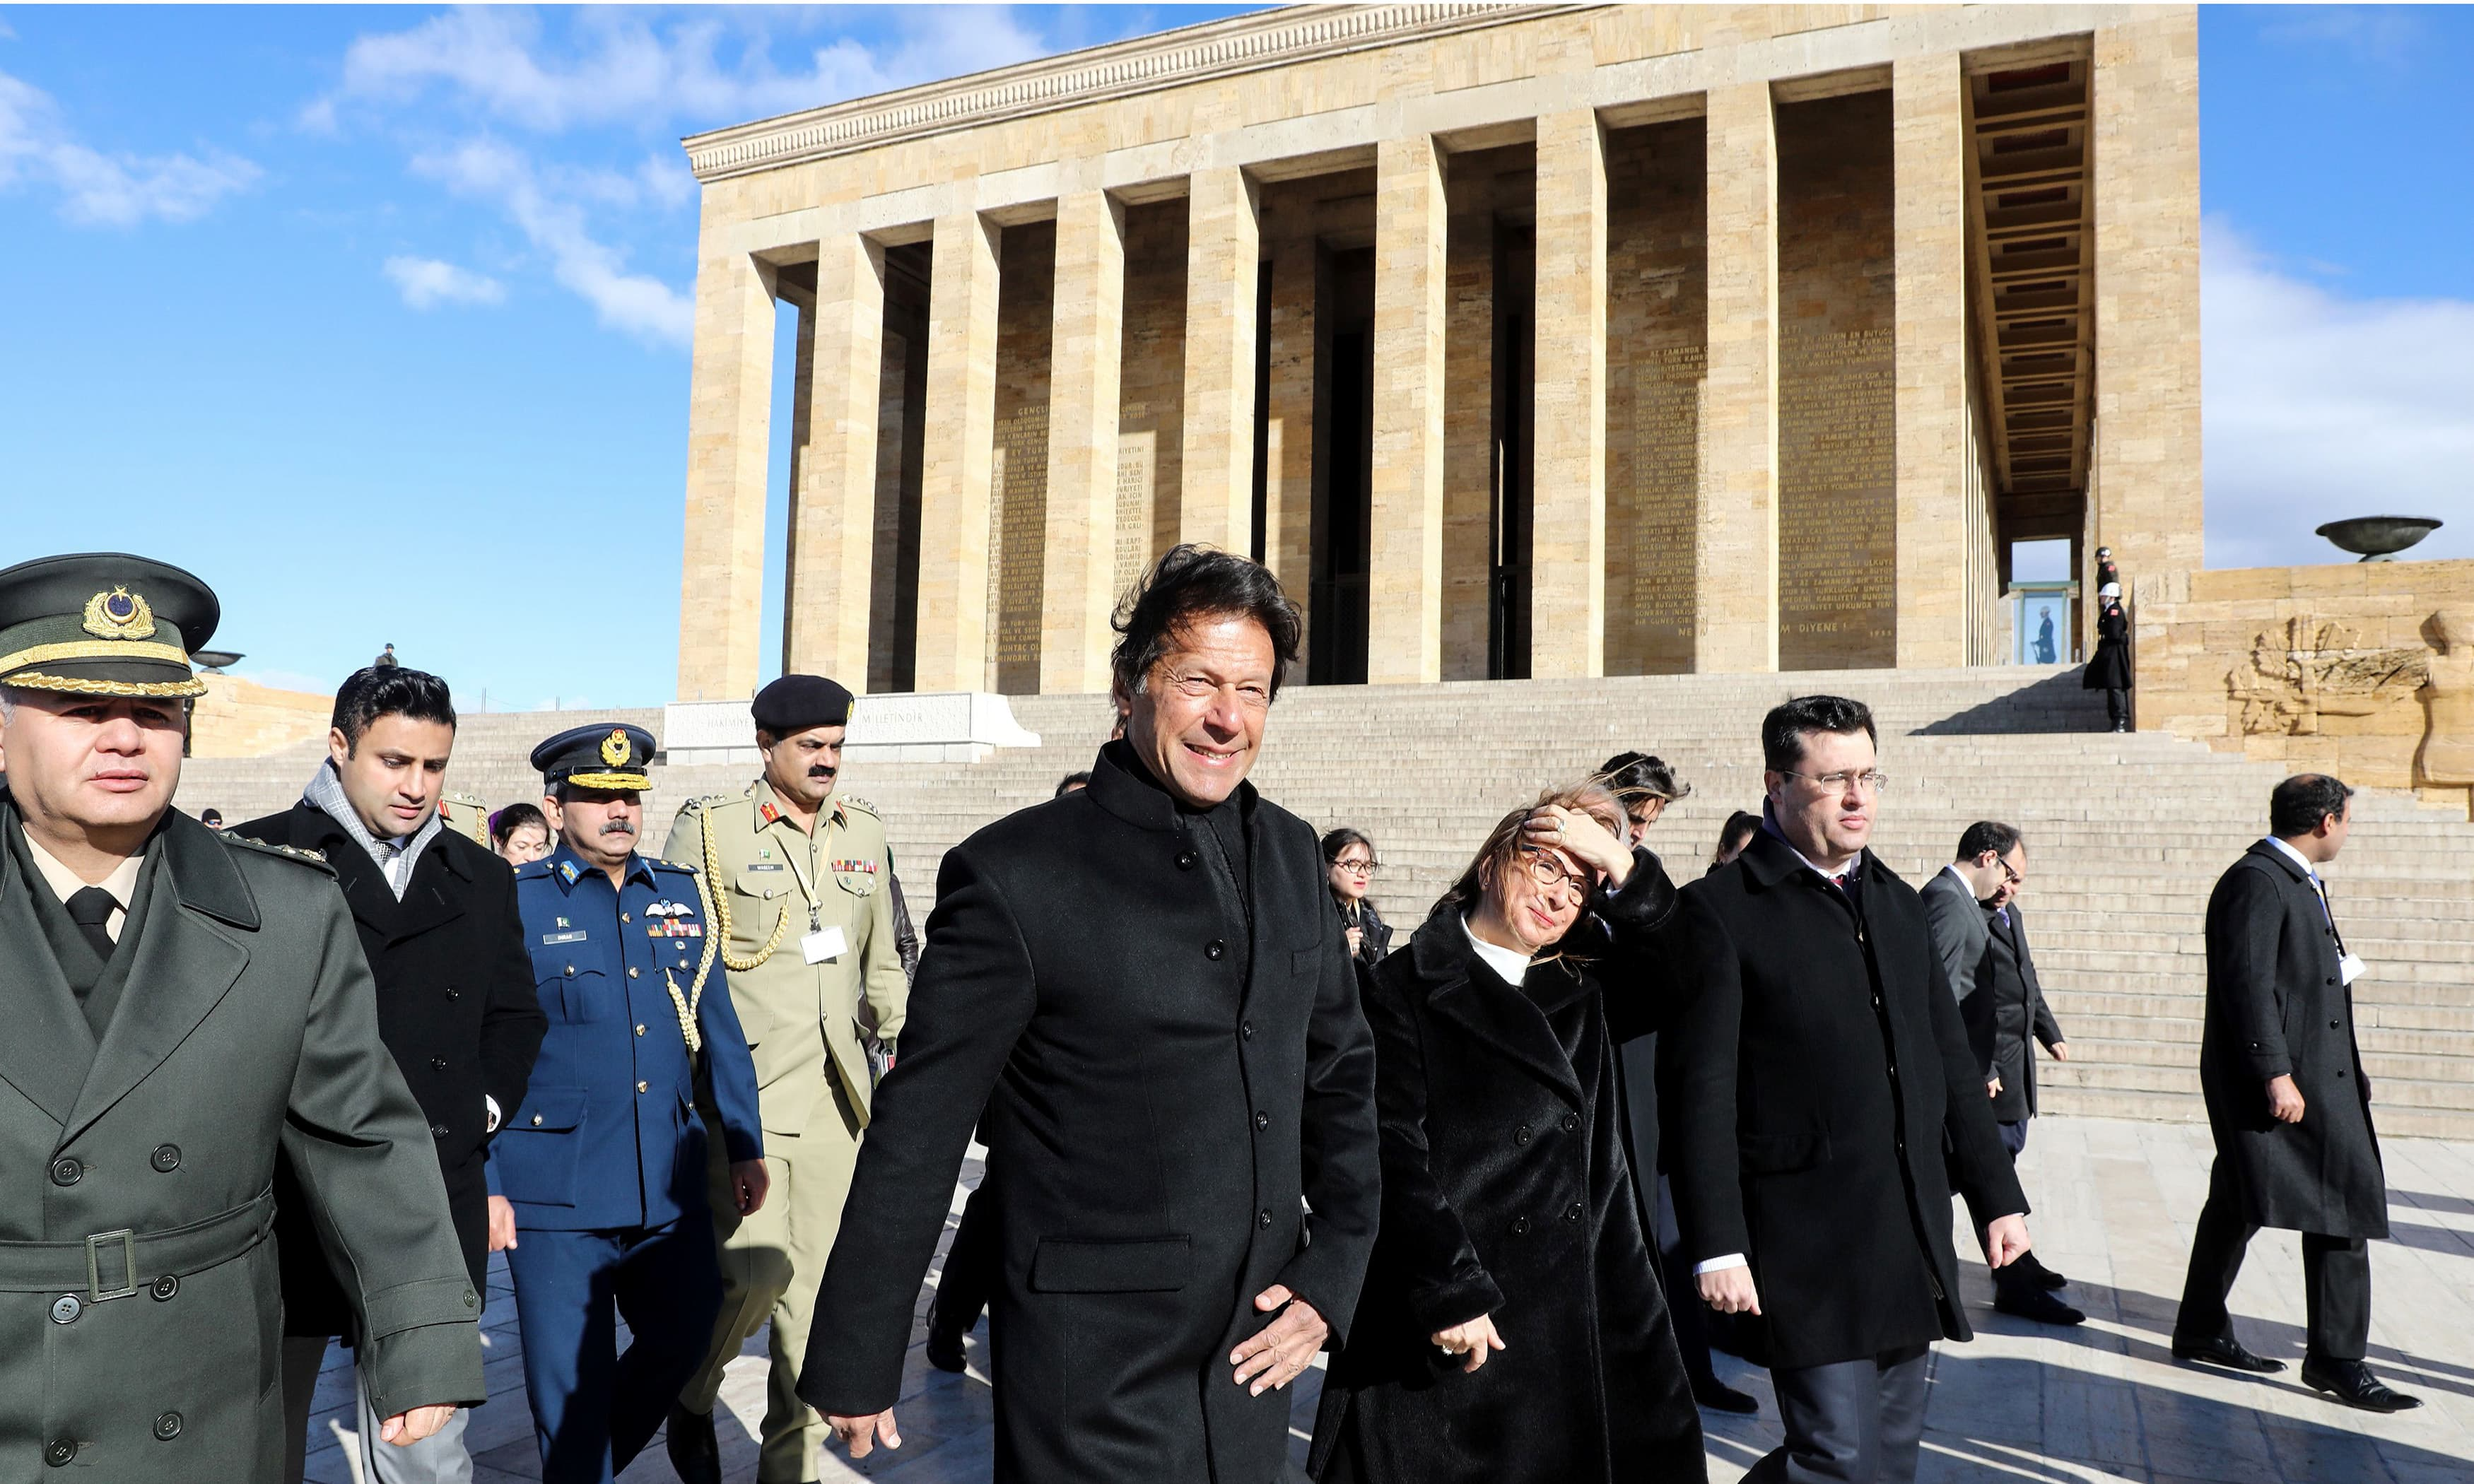 Prime Minister Imran Khan visits Anitkabir, the mausoleum of Turkish Republic's founder Mustafa Kemal Ataturk. —AFP